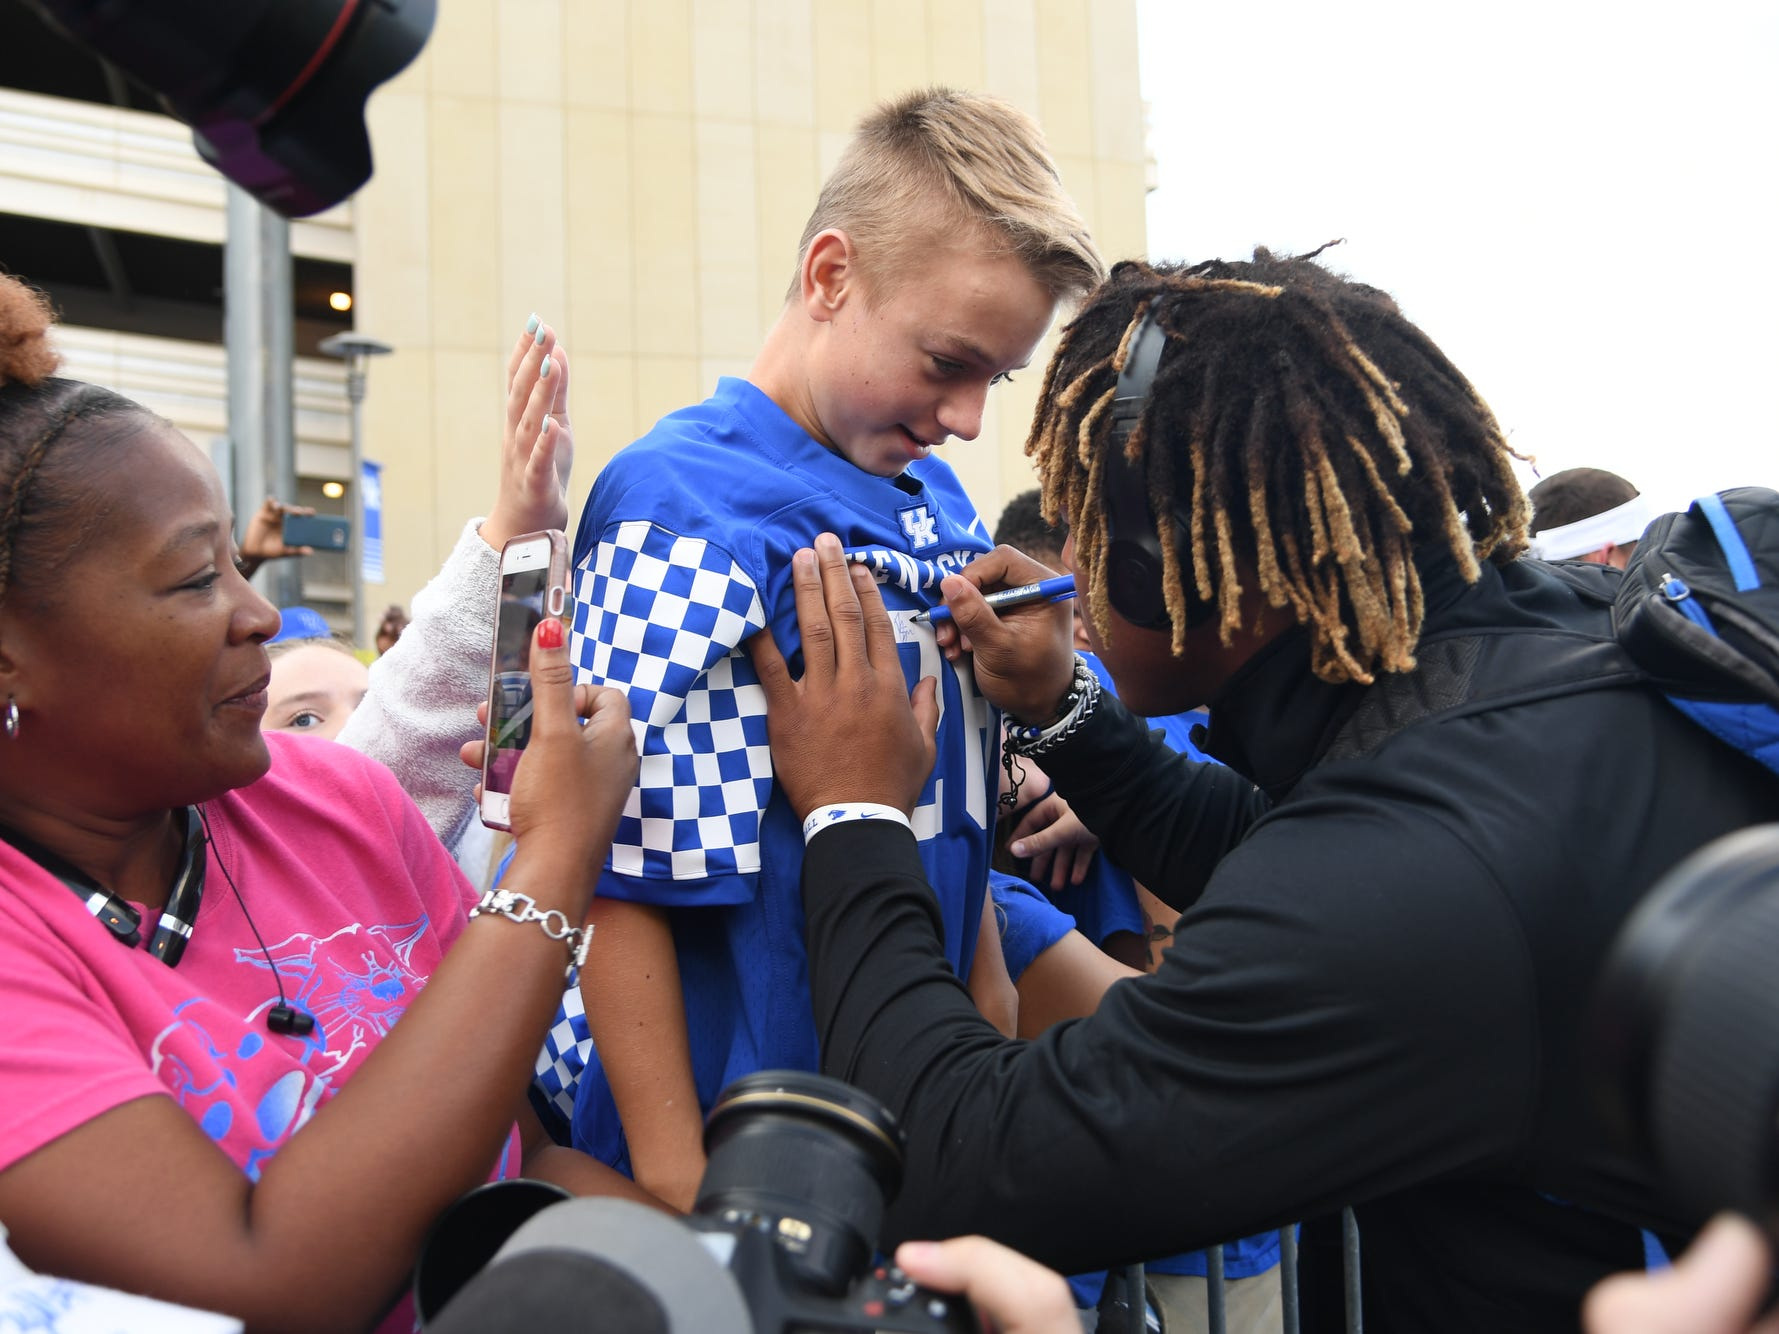 UK RB Benny Snell Jr. autographs a young fan's jersey during the Cat Walk before the University of Kentucky football game against South Carolina at Kroger Field in Lexington, Kentucky on Saturday, September 29, 2018.